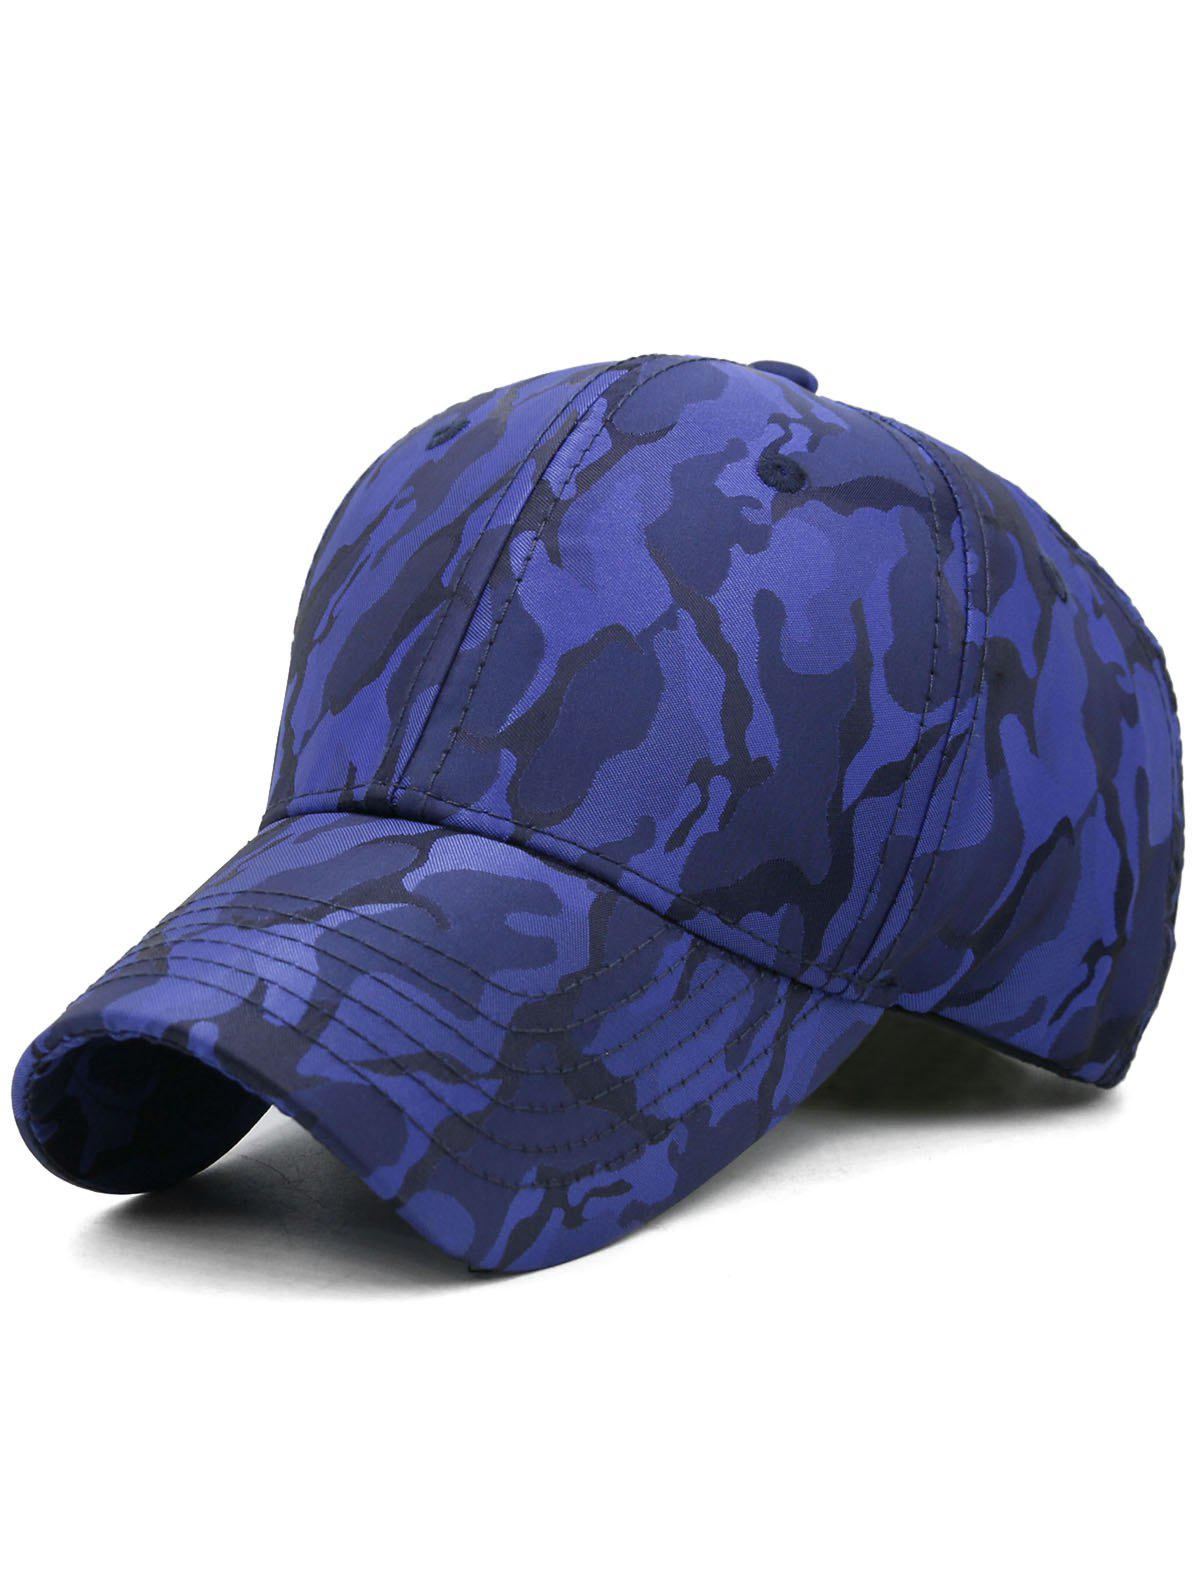 Lightweight Camouflage Adjustable Baseball Hat - BLUE